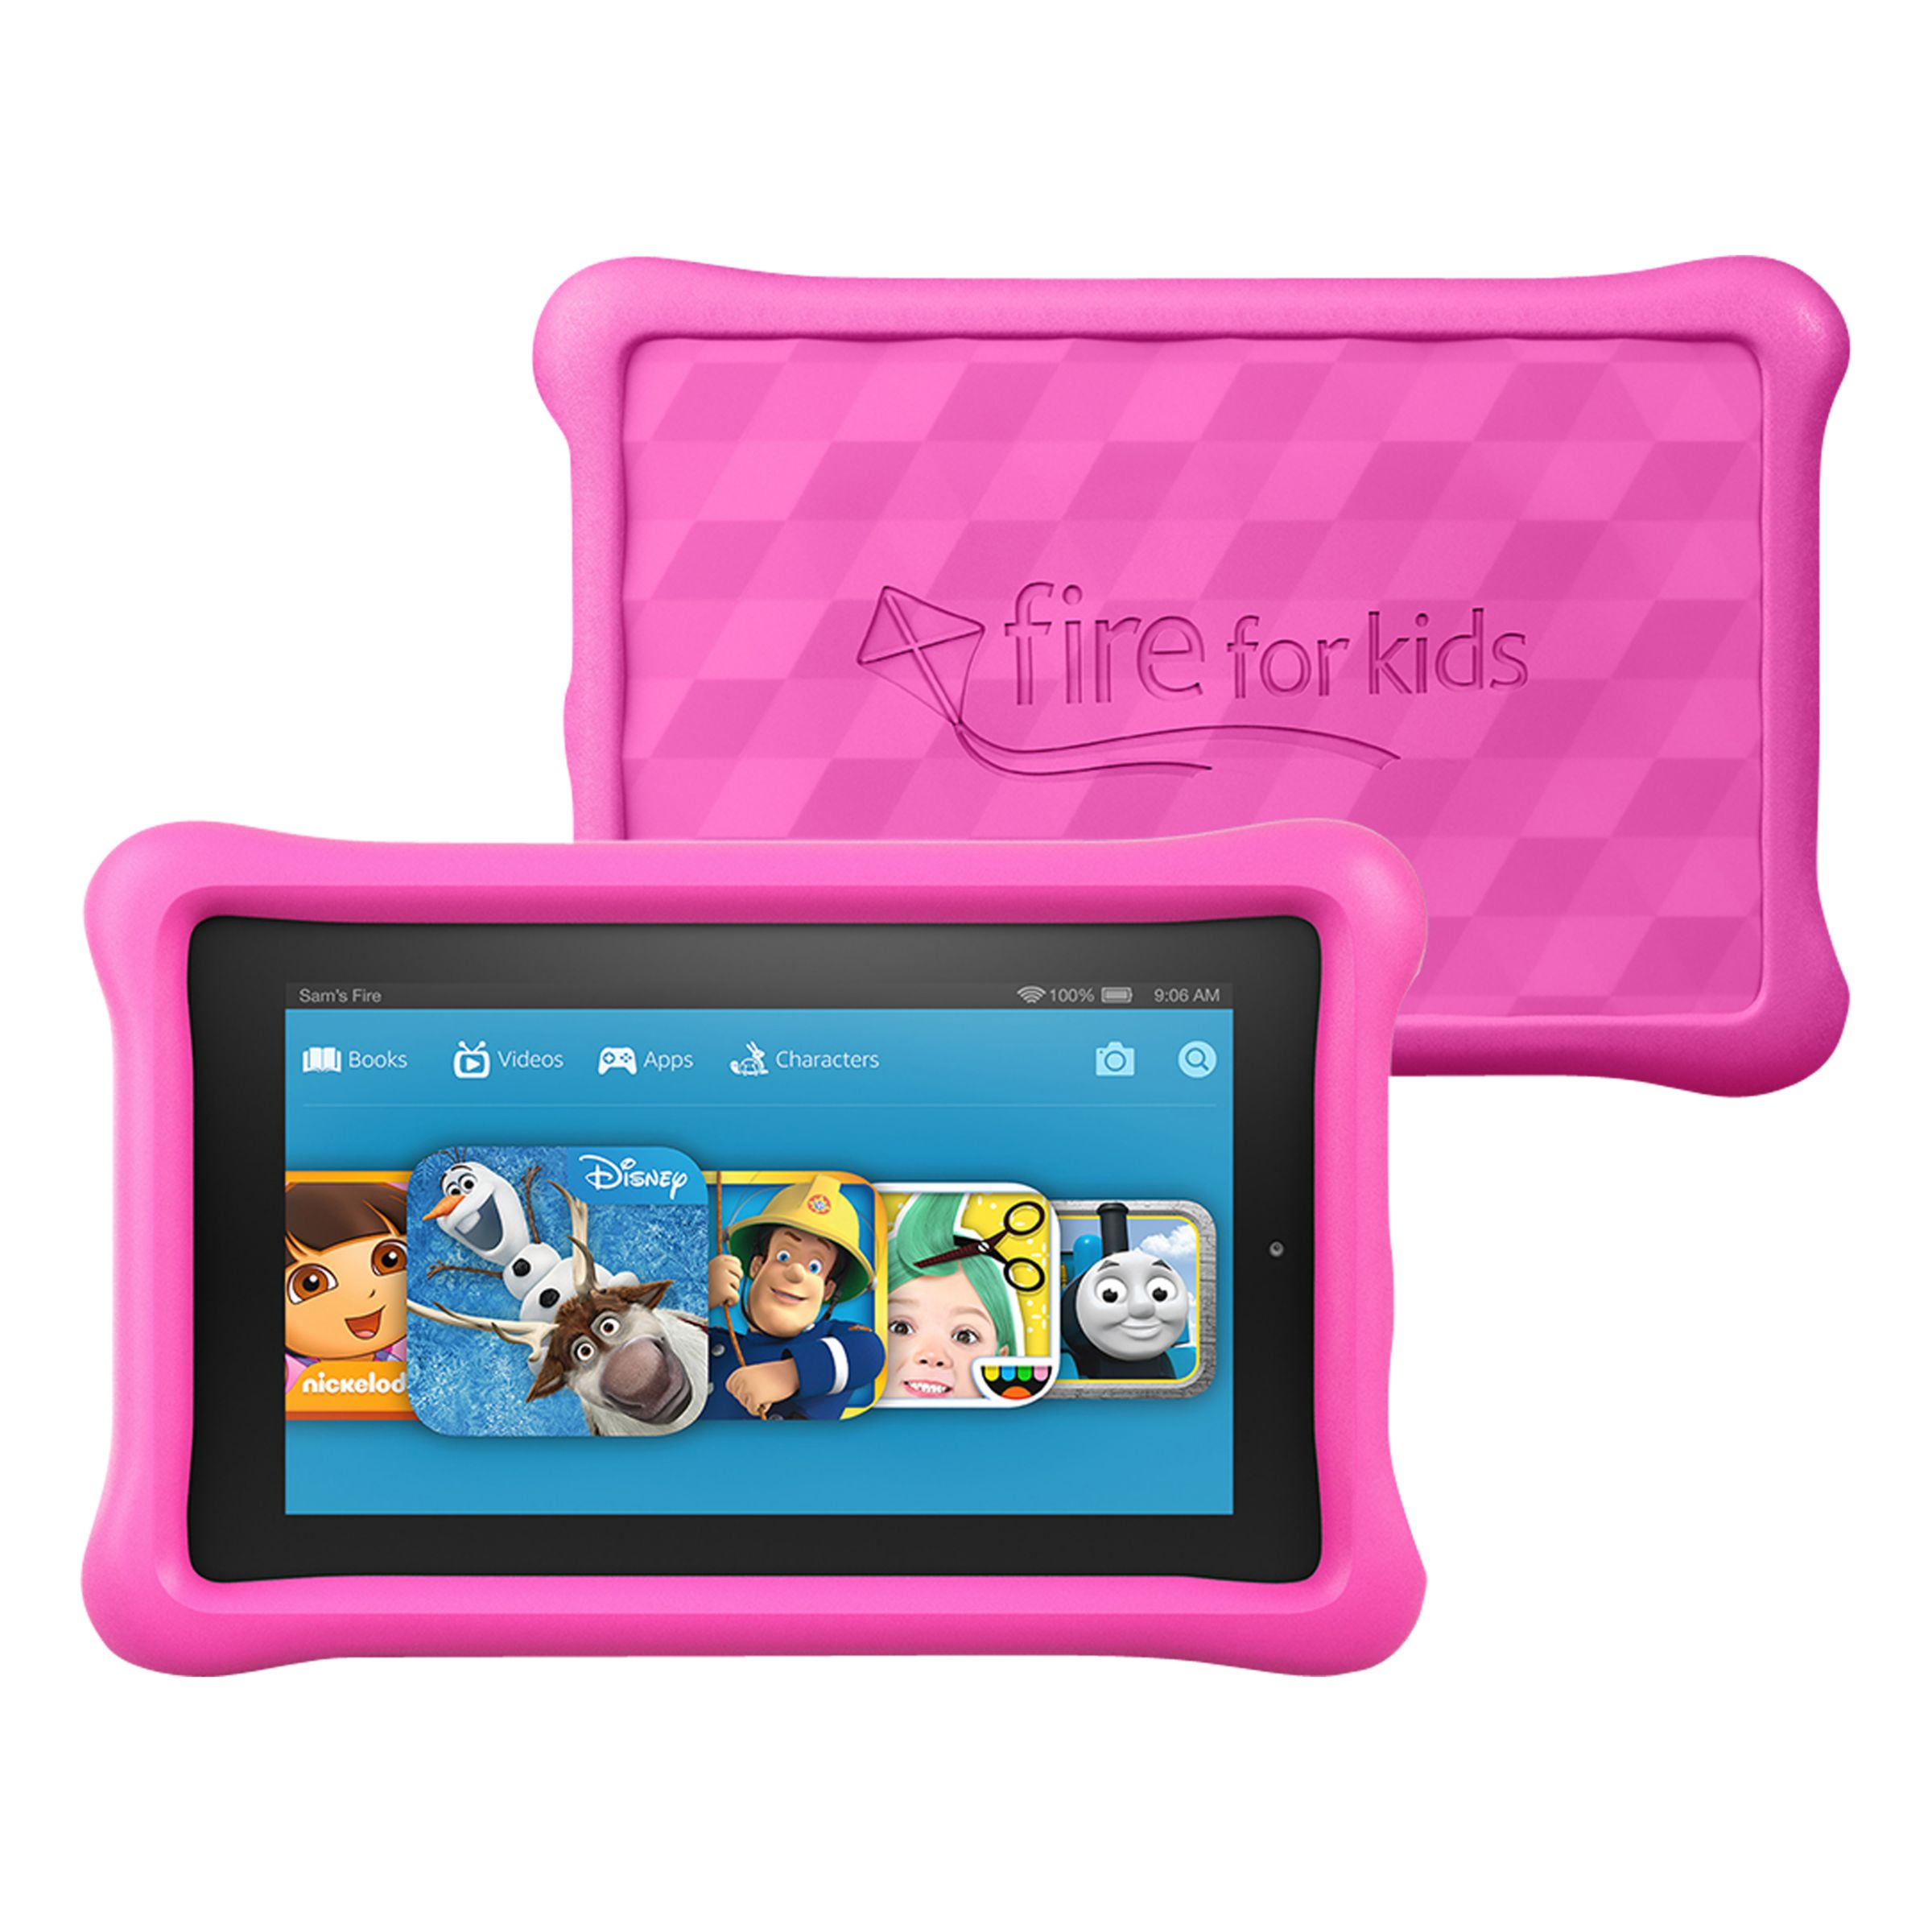 Amazon New Amazon Fire Kids Edition 7 Tablet, Quad-core, Fire OS, 7, Wi-Fi, 16GB